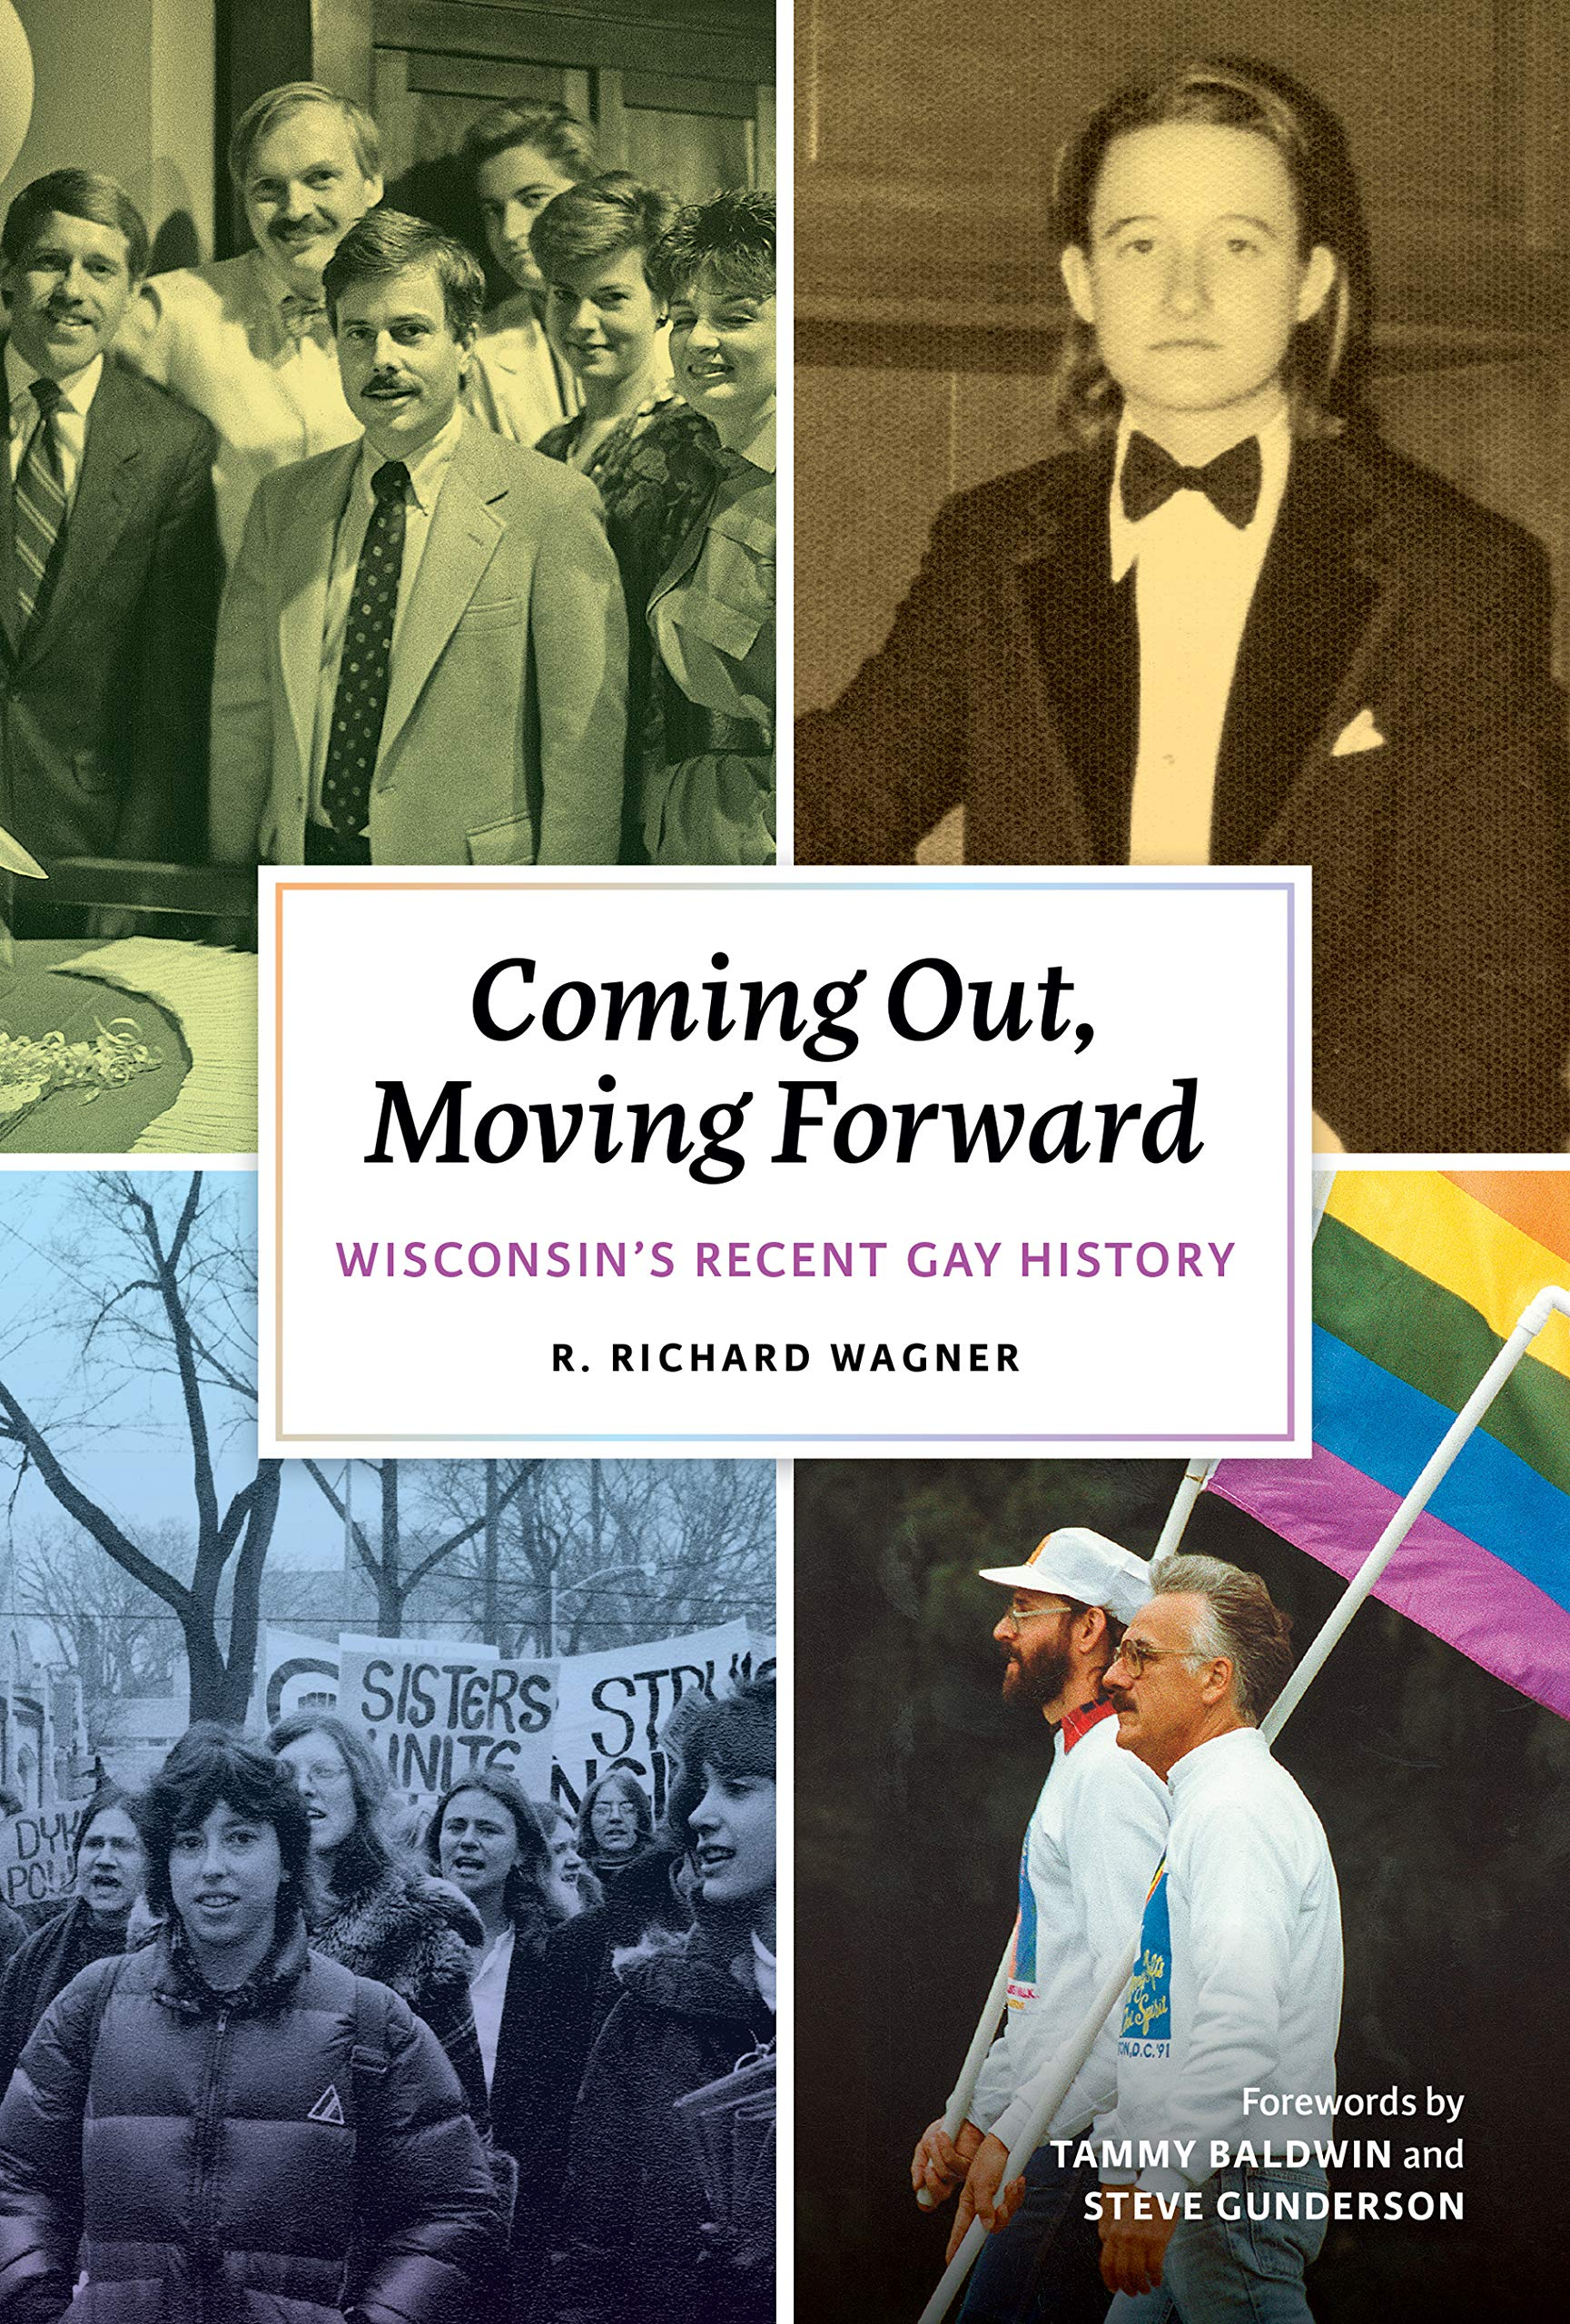 Coming out, moving forward: Wisconsin's recent gay